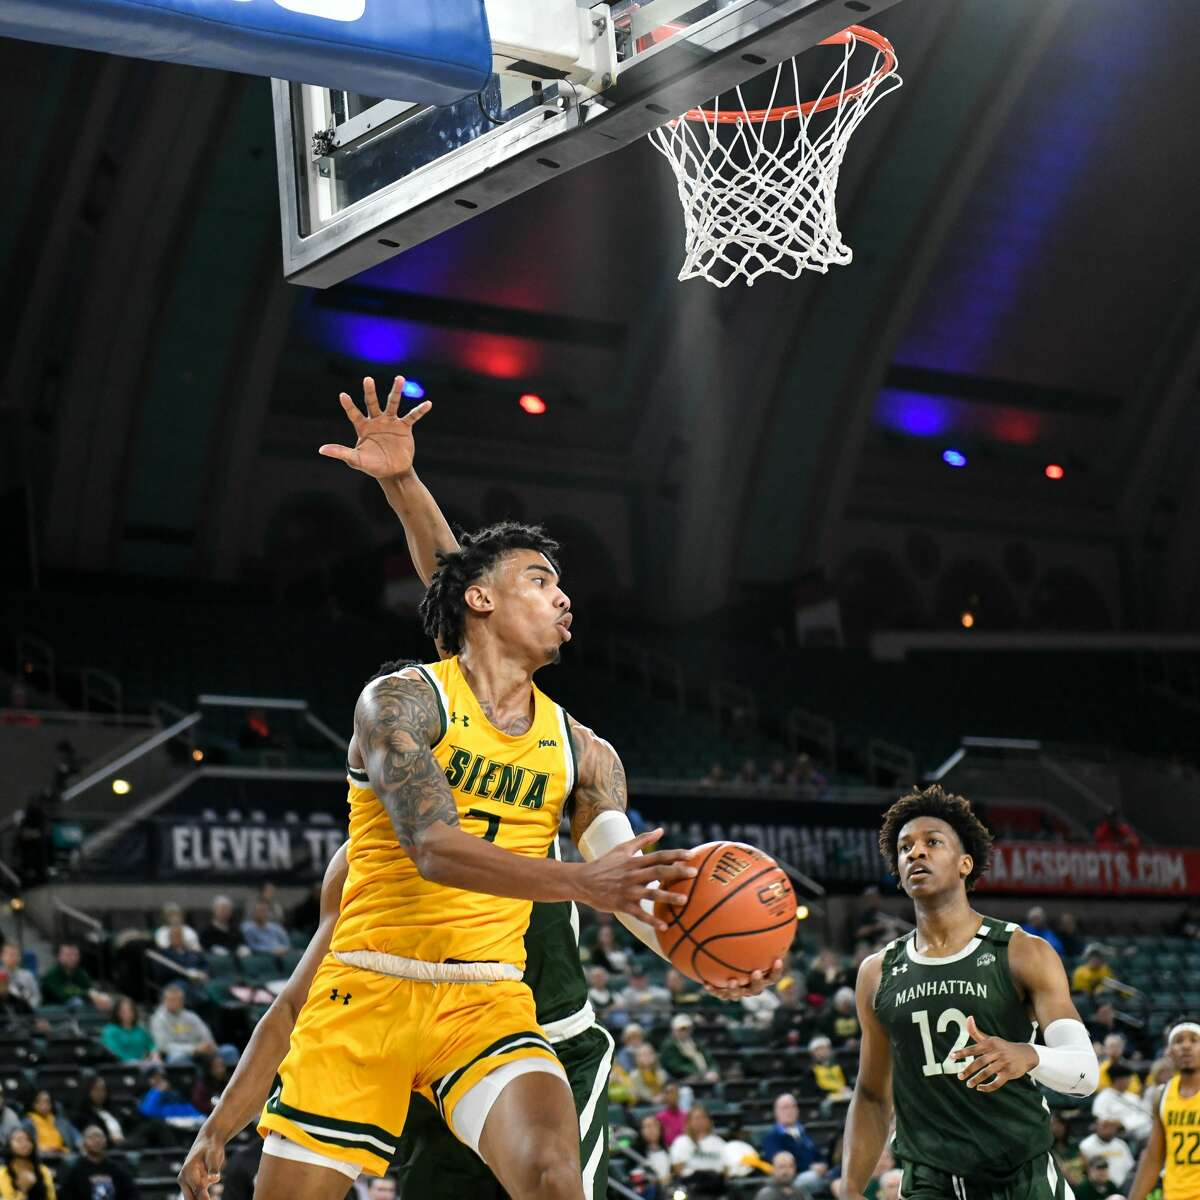 Manny Camper of Siena goes to the basket against Manhattan in the quarterfinals of the Metro Atlantic Athletic Conference Tournament on Wednesday, March 11, 2020, in Atlantic City, N.J. (Chuck Marvel / Special to the Times Union)